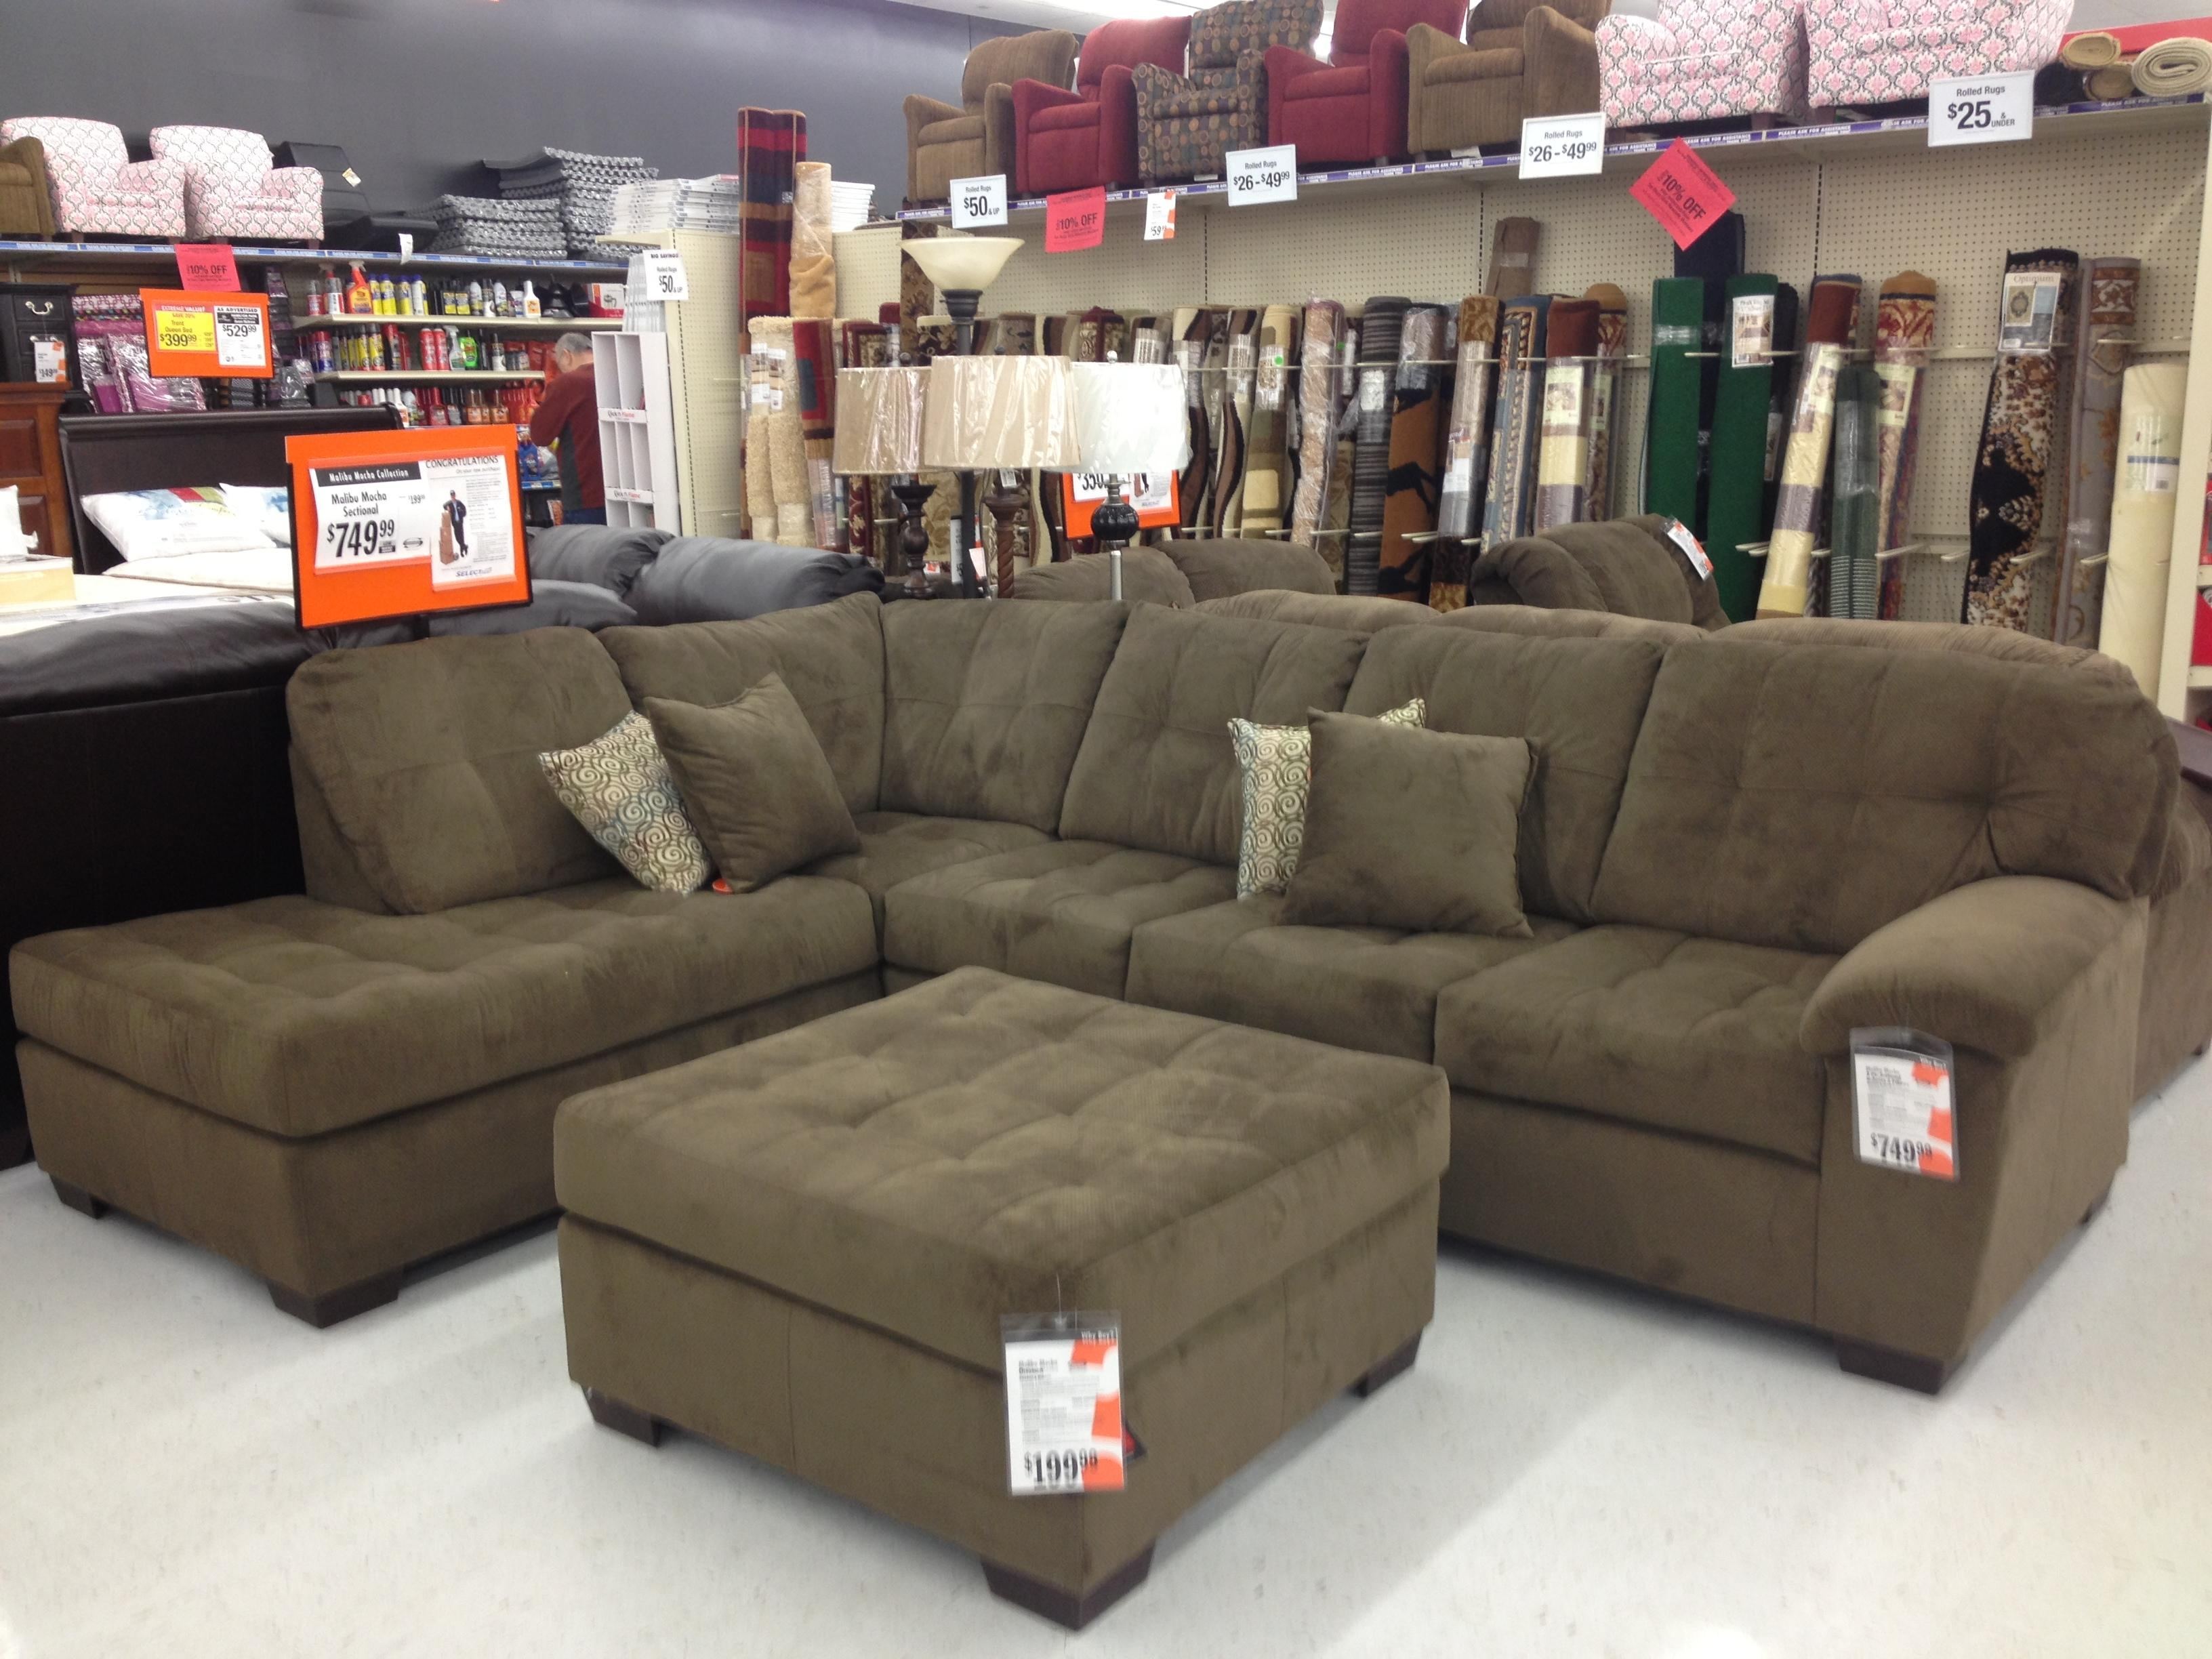 Simmons Sofas At Big Lots | Tehranmix Decoration Intended For Large Comfortable Sectional Sofas (Image 18 of 20)